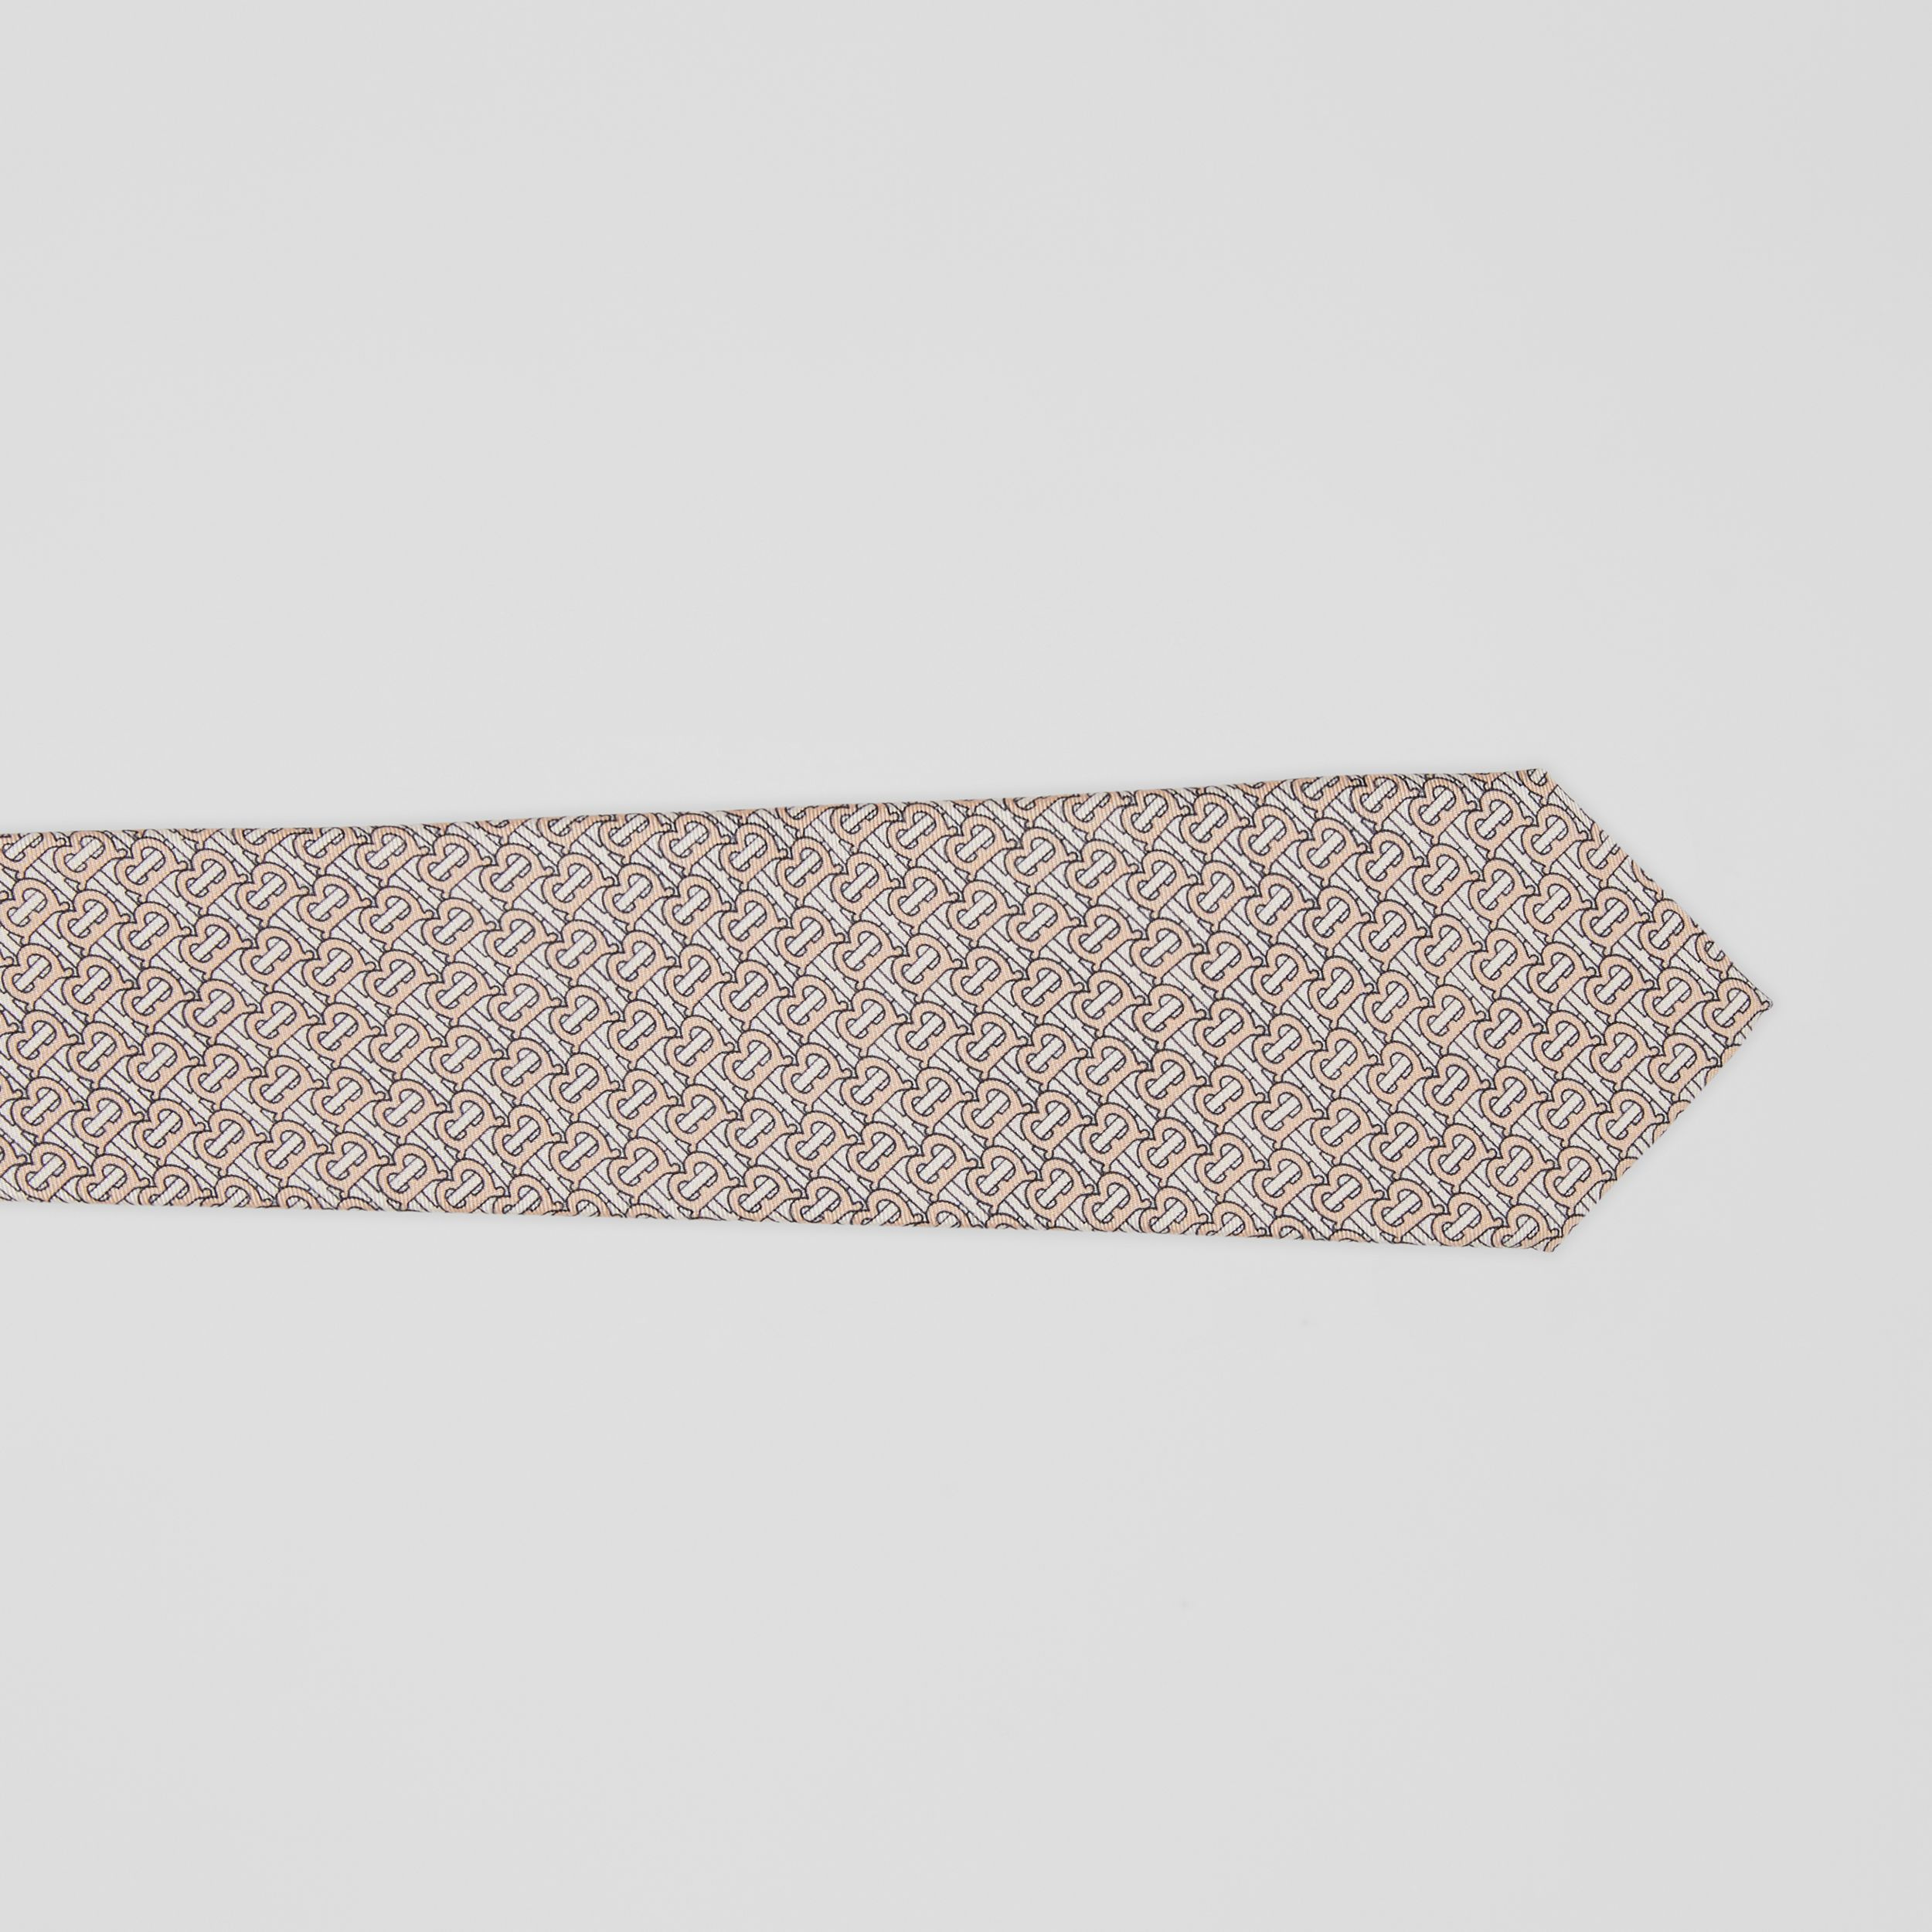 Classic Cut Monogram Silk Jacquard Tie in Blush Pink - Men | Burberry - 2